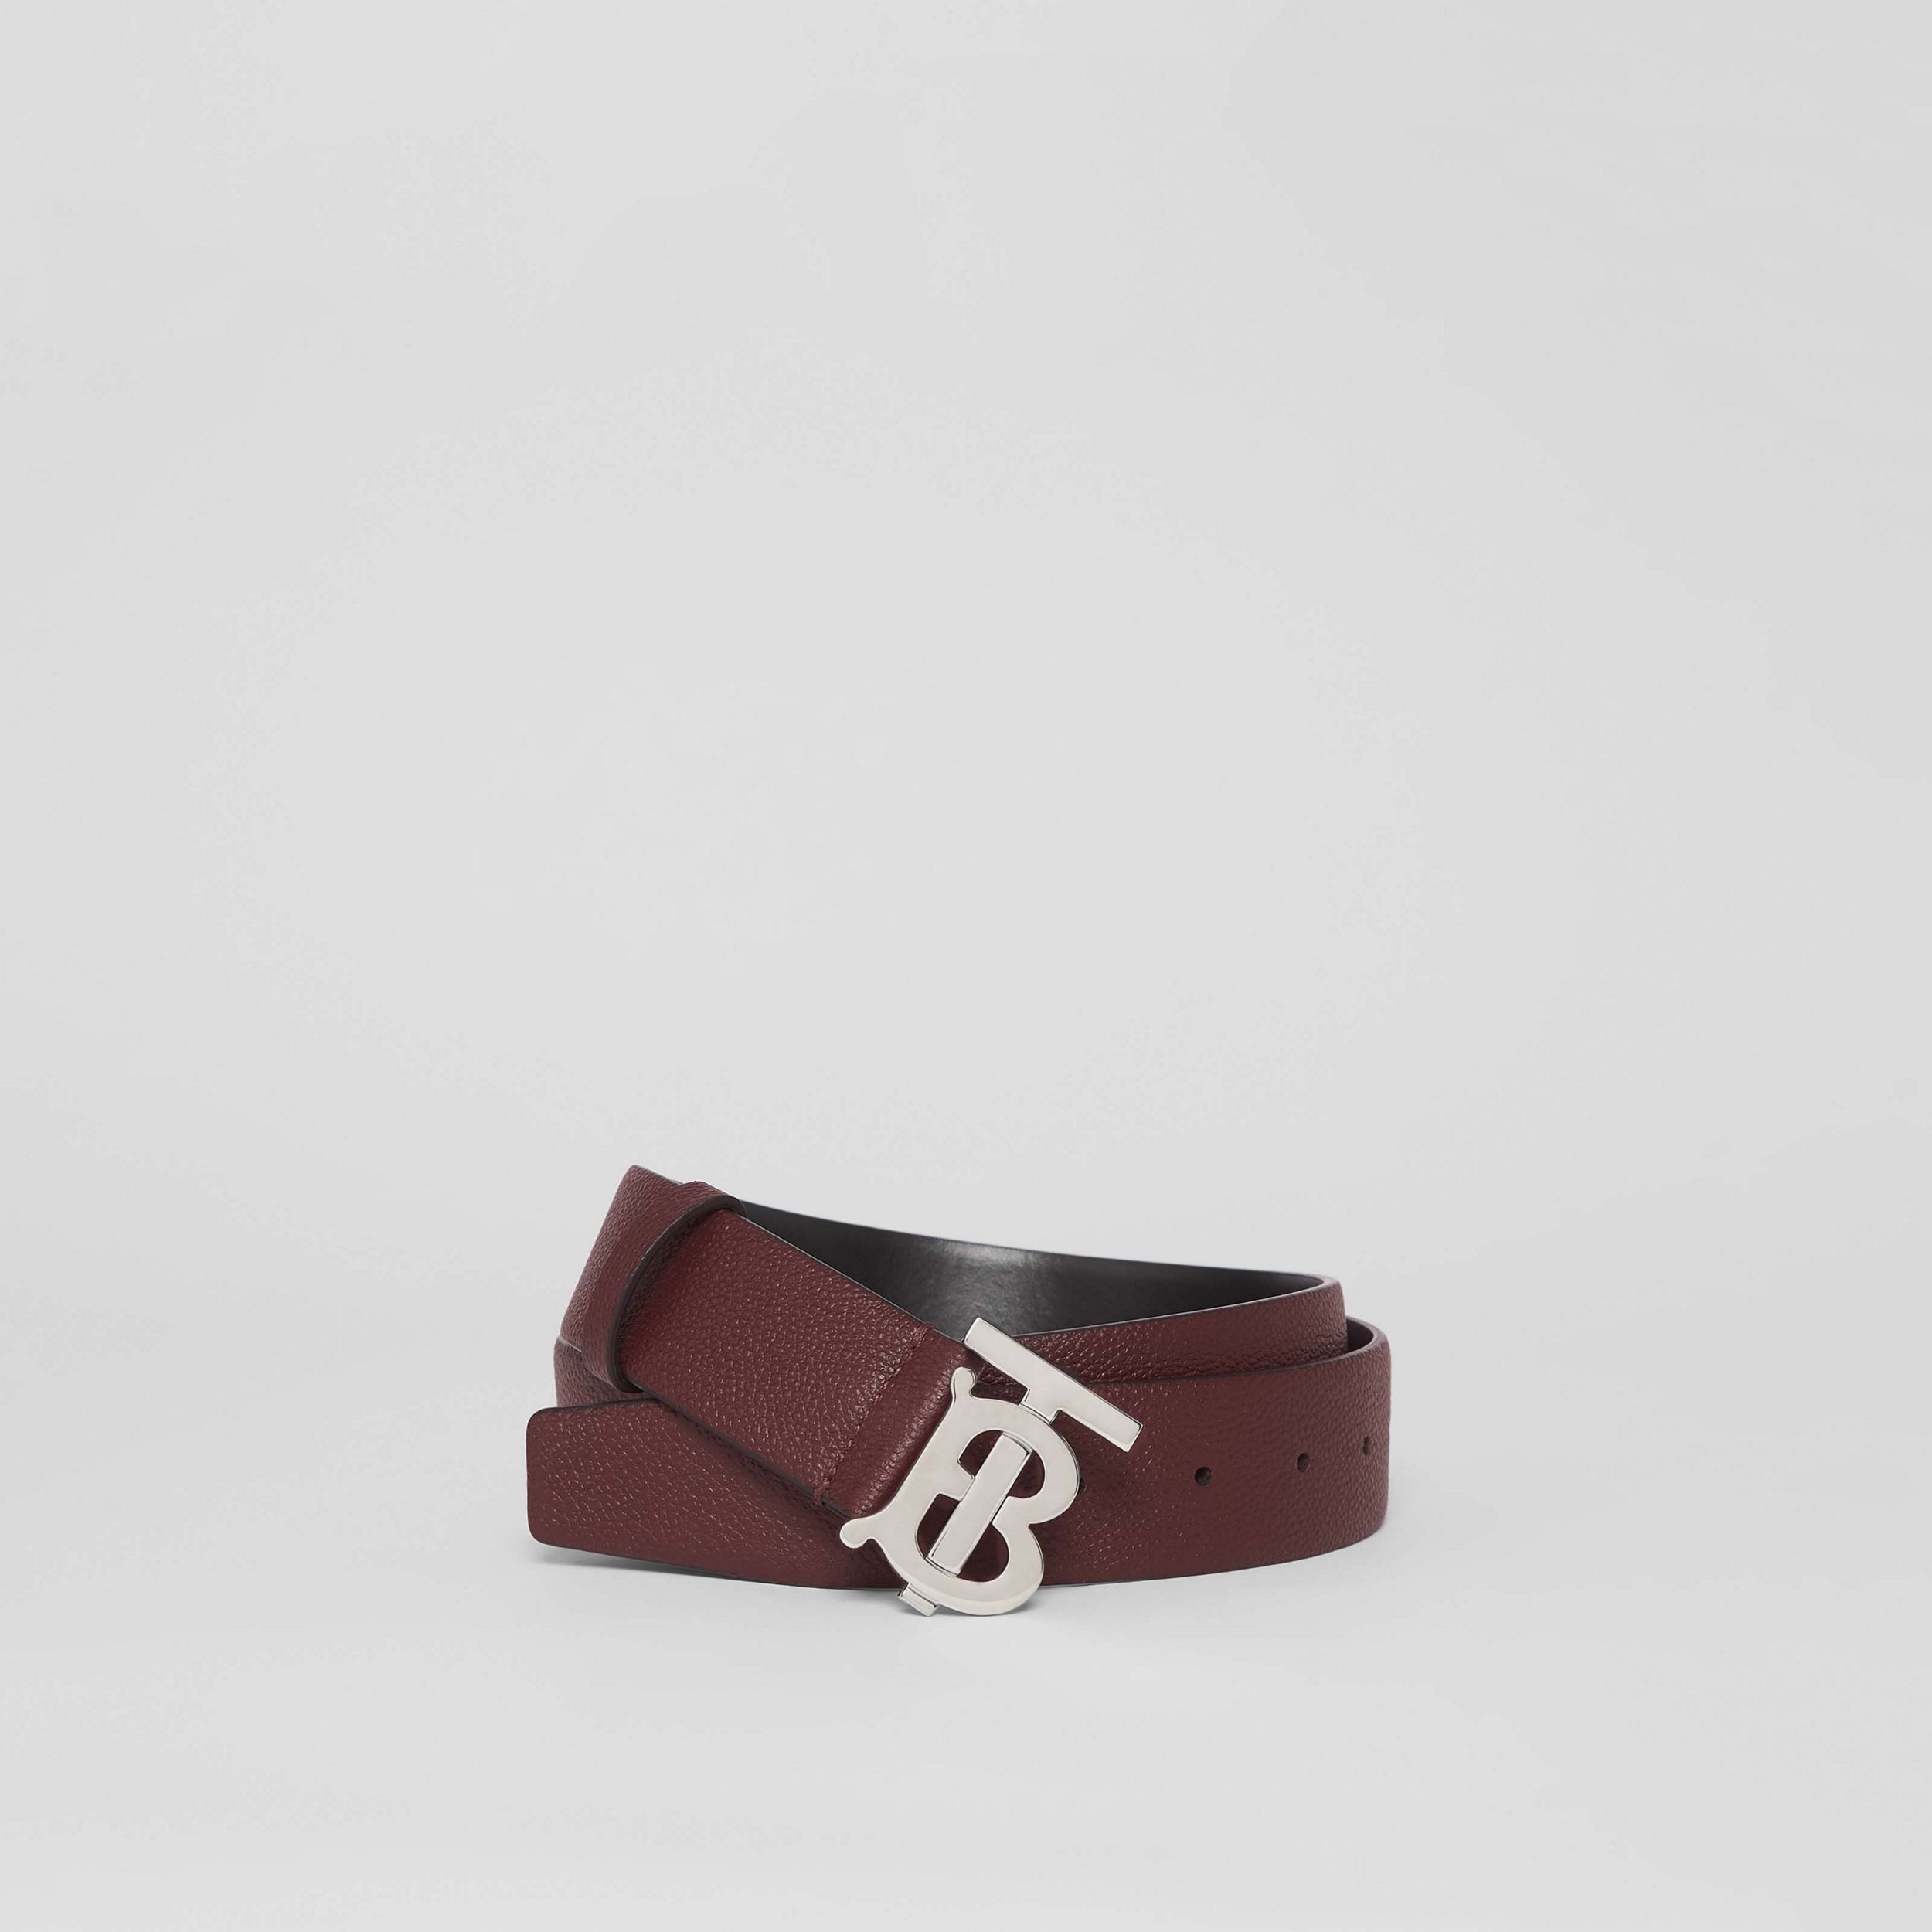 Monogram Motif Leather Belt in Oxblood - Men | Burberry - 1